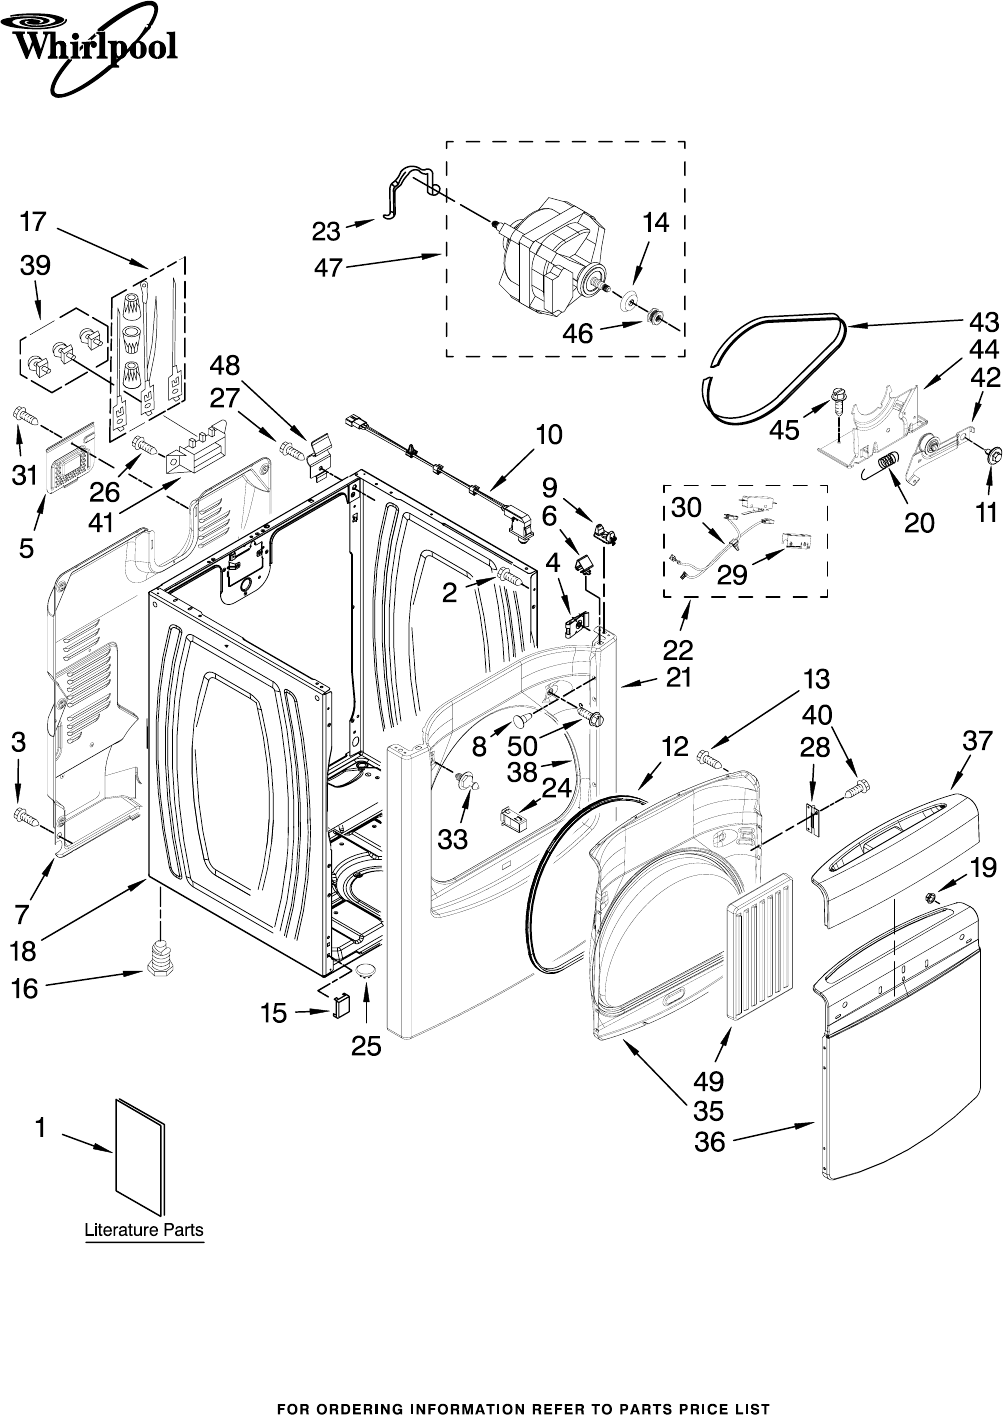 Whirlpool Clothes Dryer WED6200SW1 User Guide | ManualsOnline.com